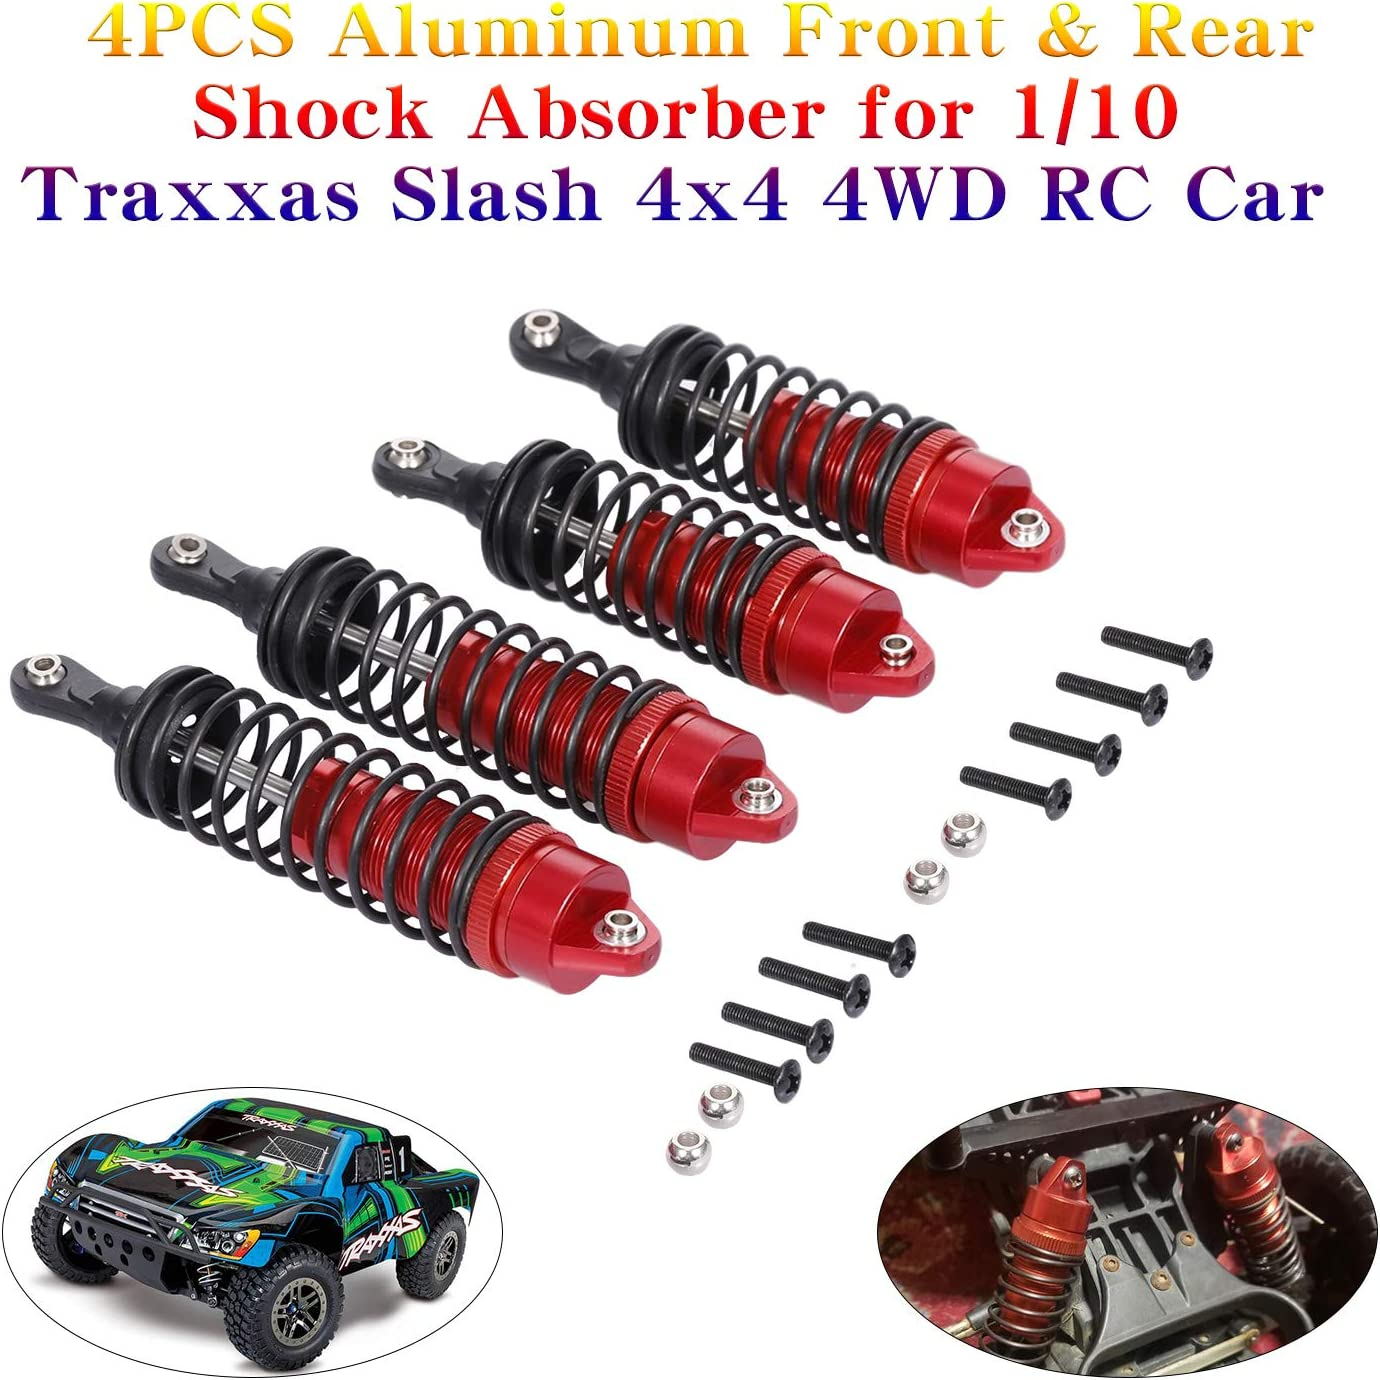 Globact 4PCS Aluminum Front /& Rear RC Shocks for 1//10 Traxxas Slash Shocks Traxxas Slash 4x4 Traxxas Slash 2WD RC Car Replace 5862